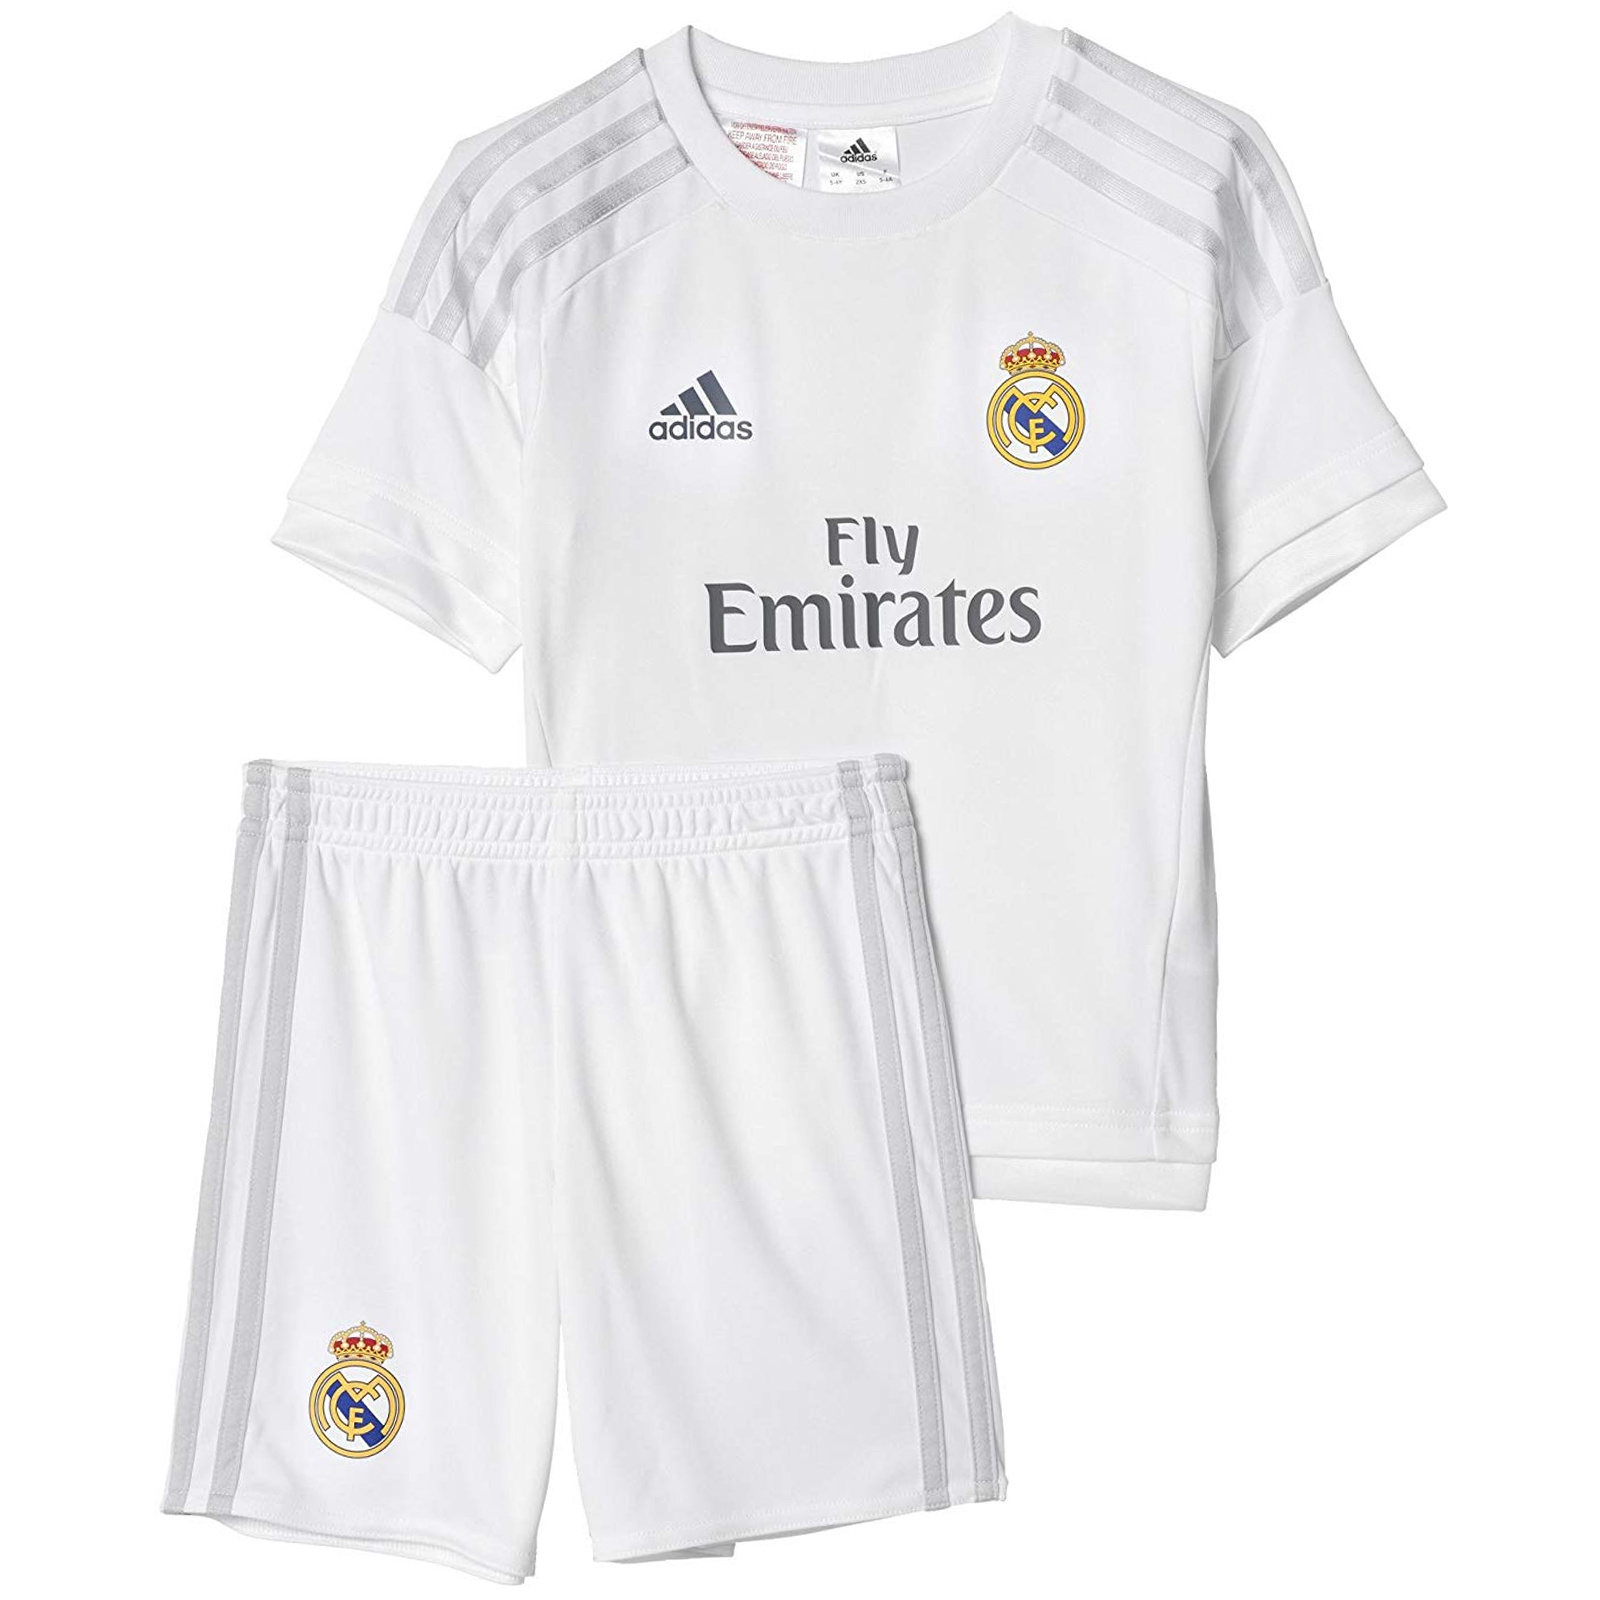 066c29ca0c7 Details about adidas Performance Boys Kids Real Madrid Home Football Mini  Kit - White - 2XS